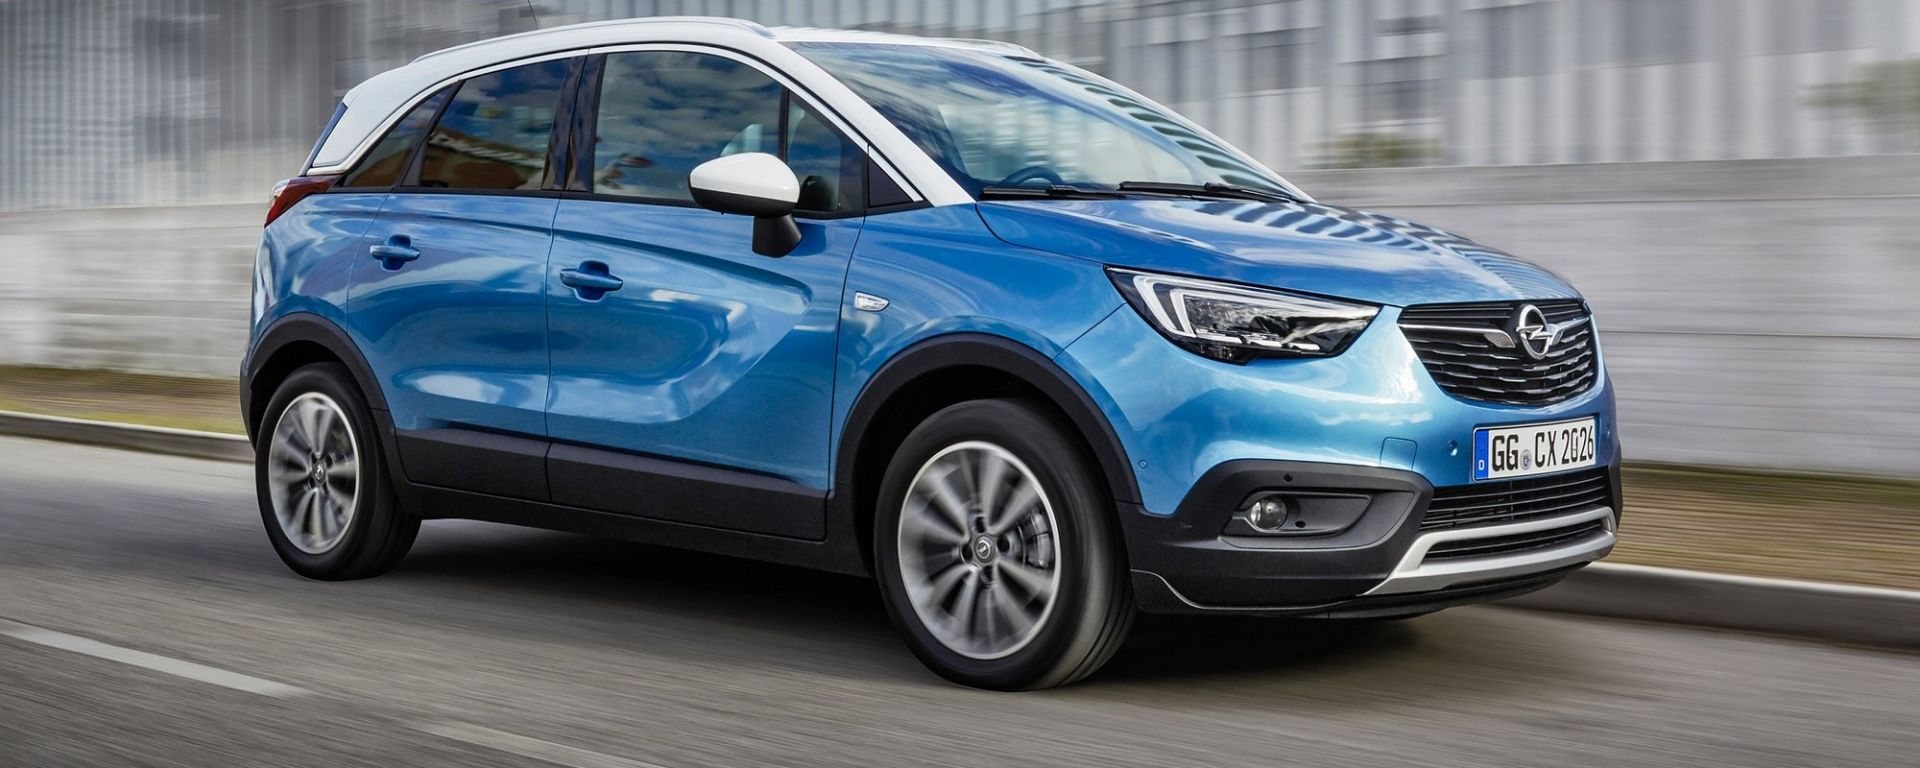 Opel Crossland X GPL Tech